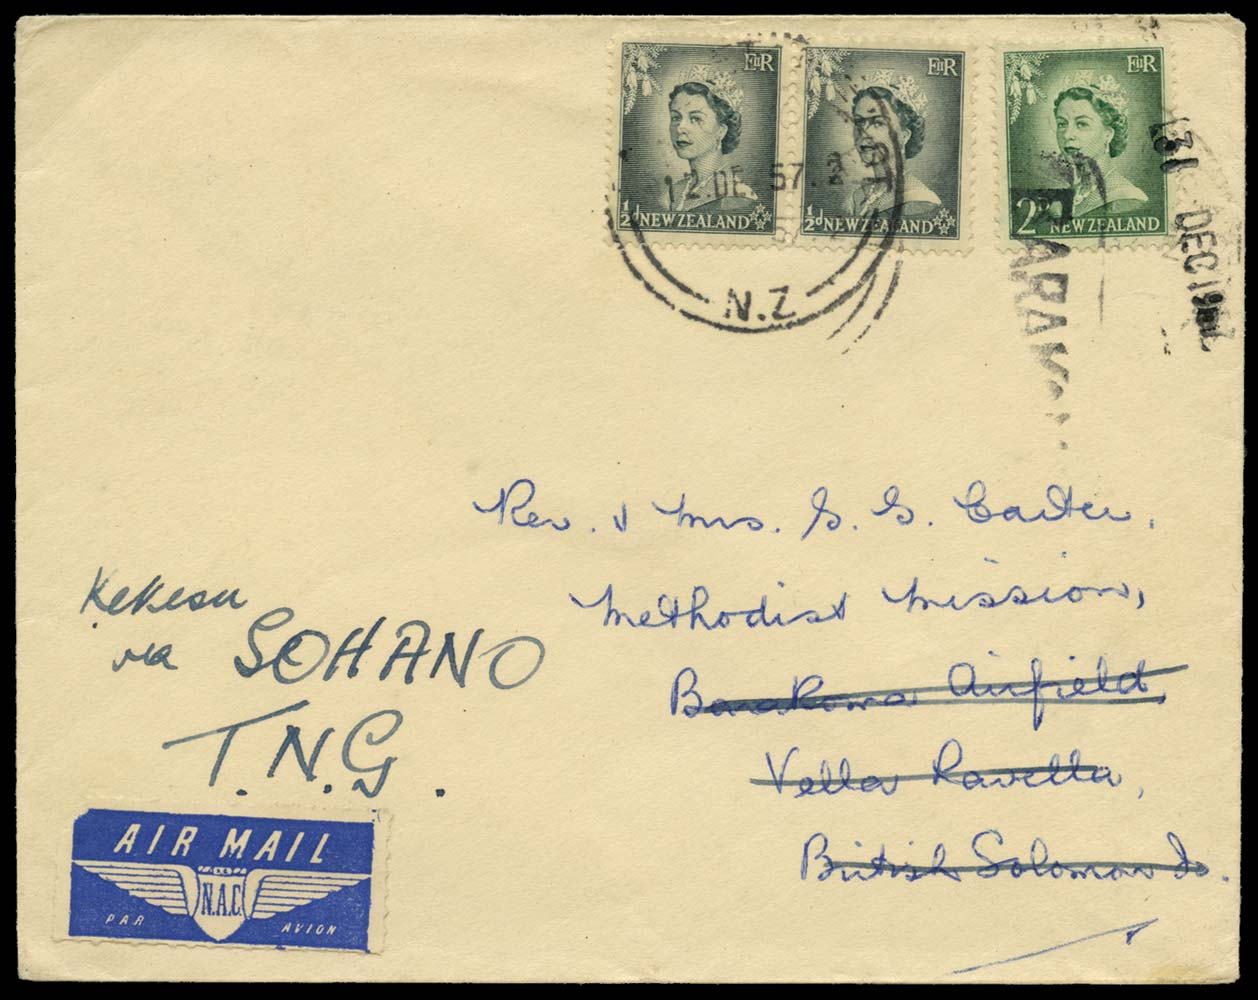 SOLOMON ISLANDS 1957 Cover